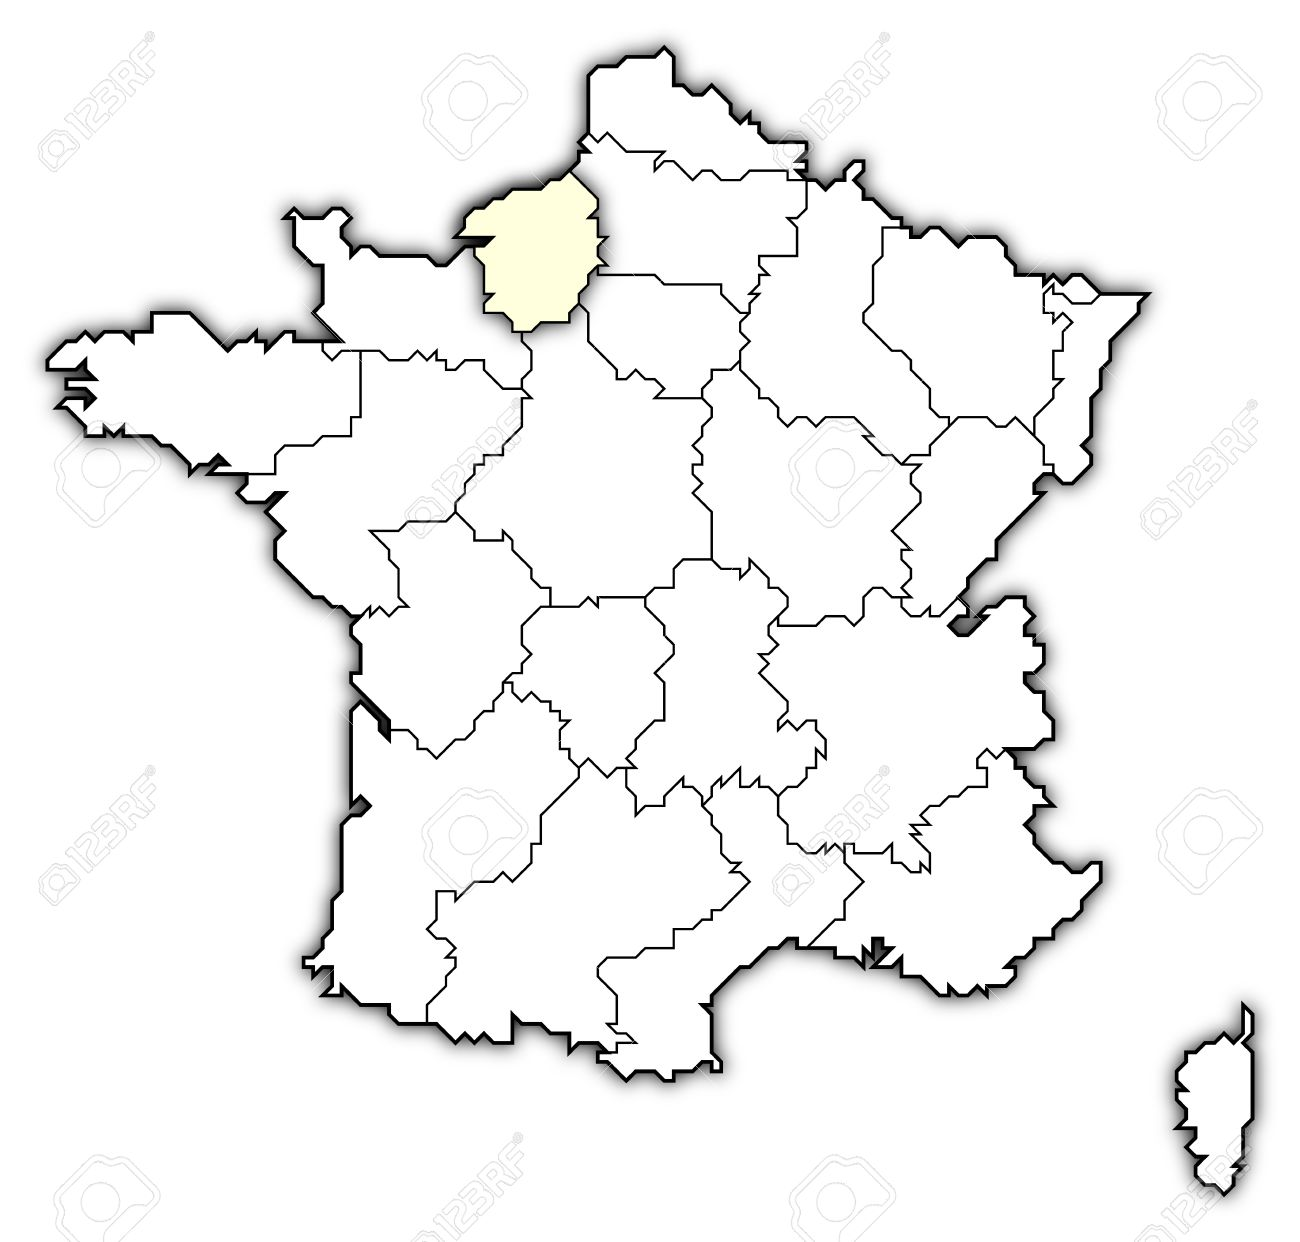 Political Map Of France With The Several Regions Where Upper Stock